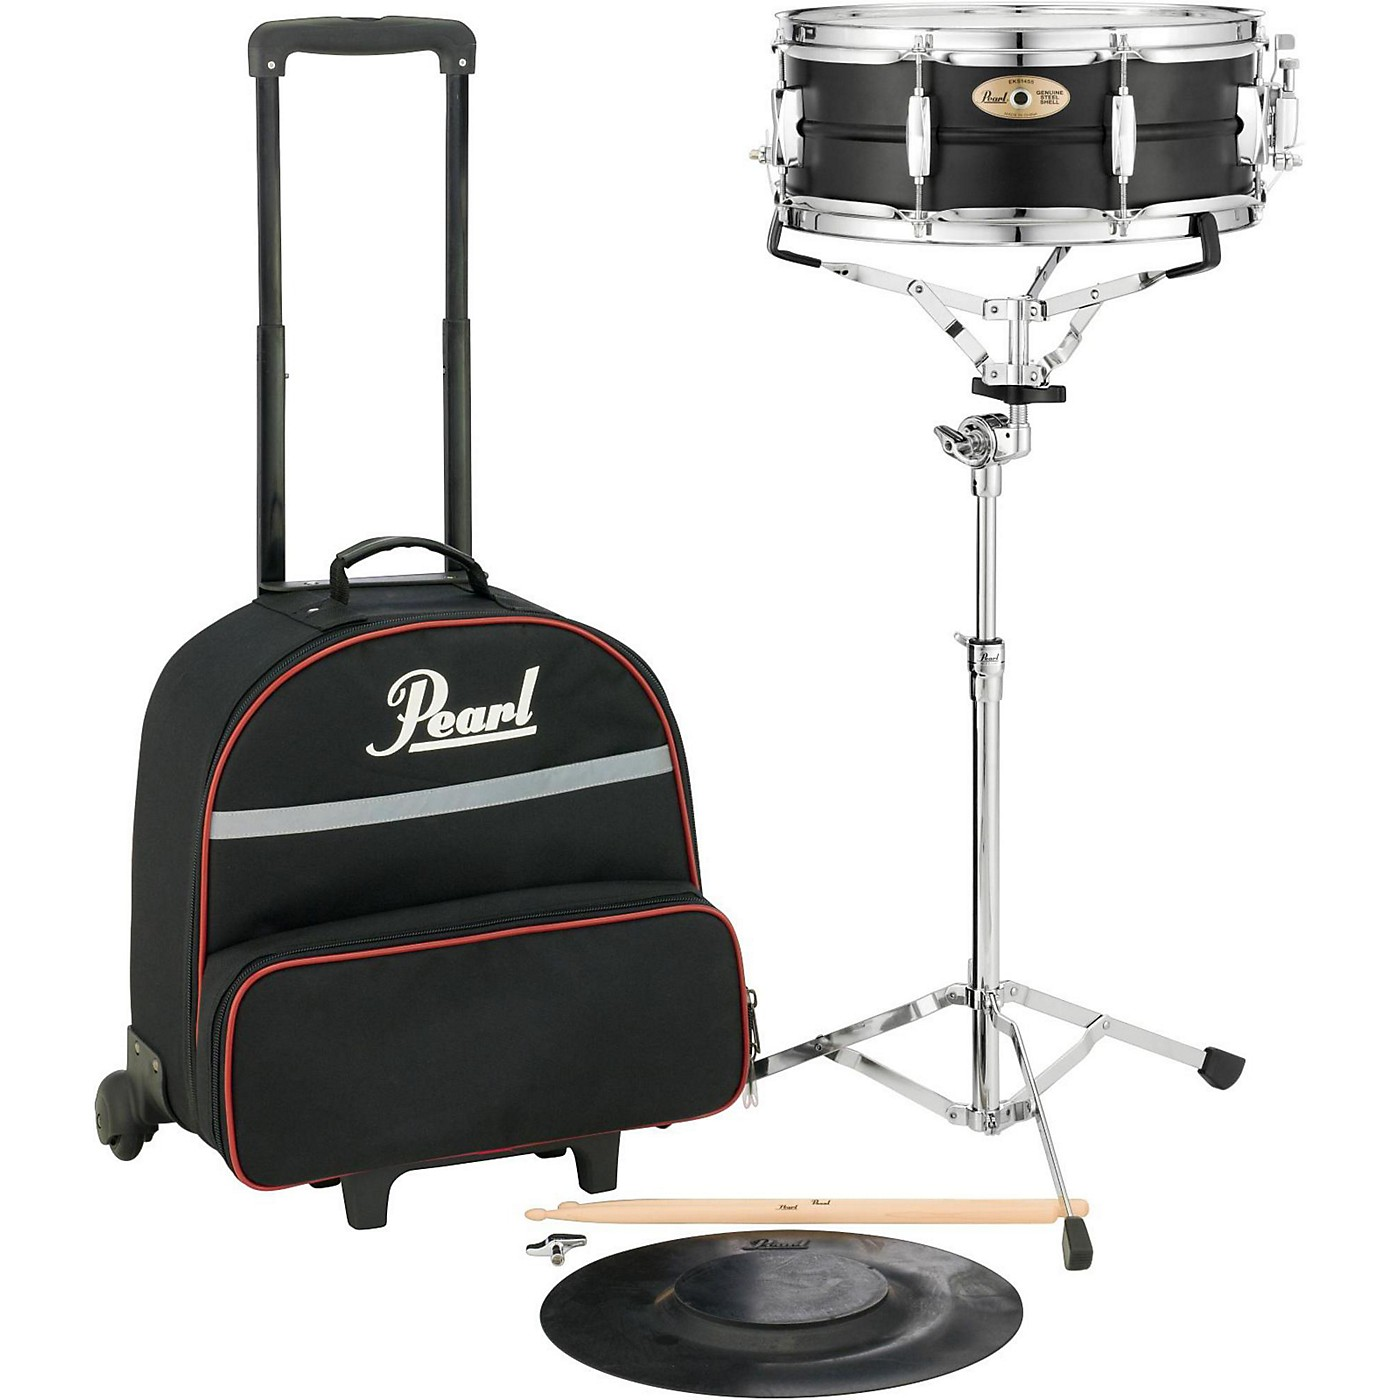 Pearl SK910C Educational Snare Kit with Rolling Cart thumbnail